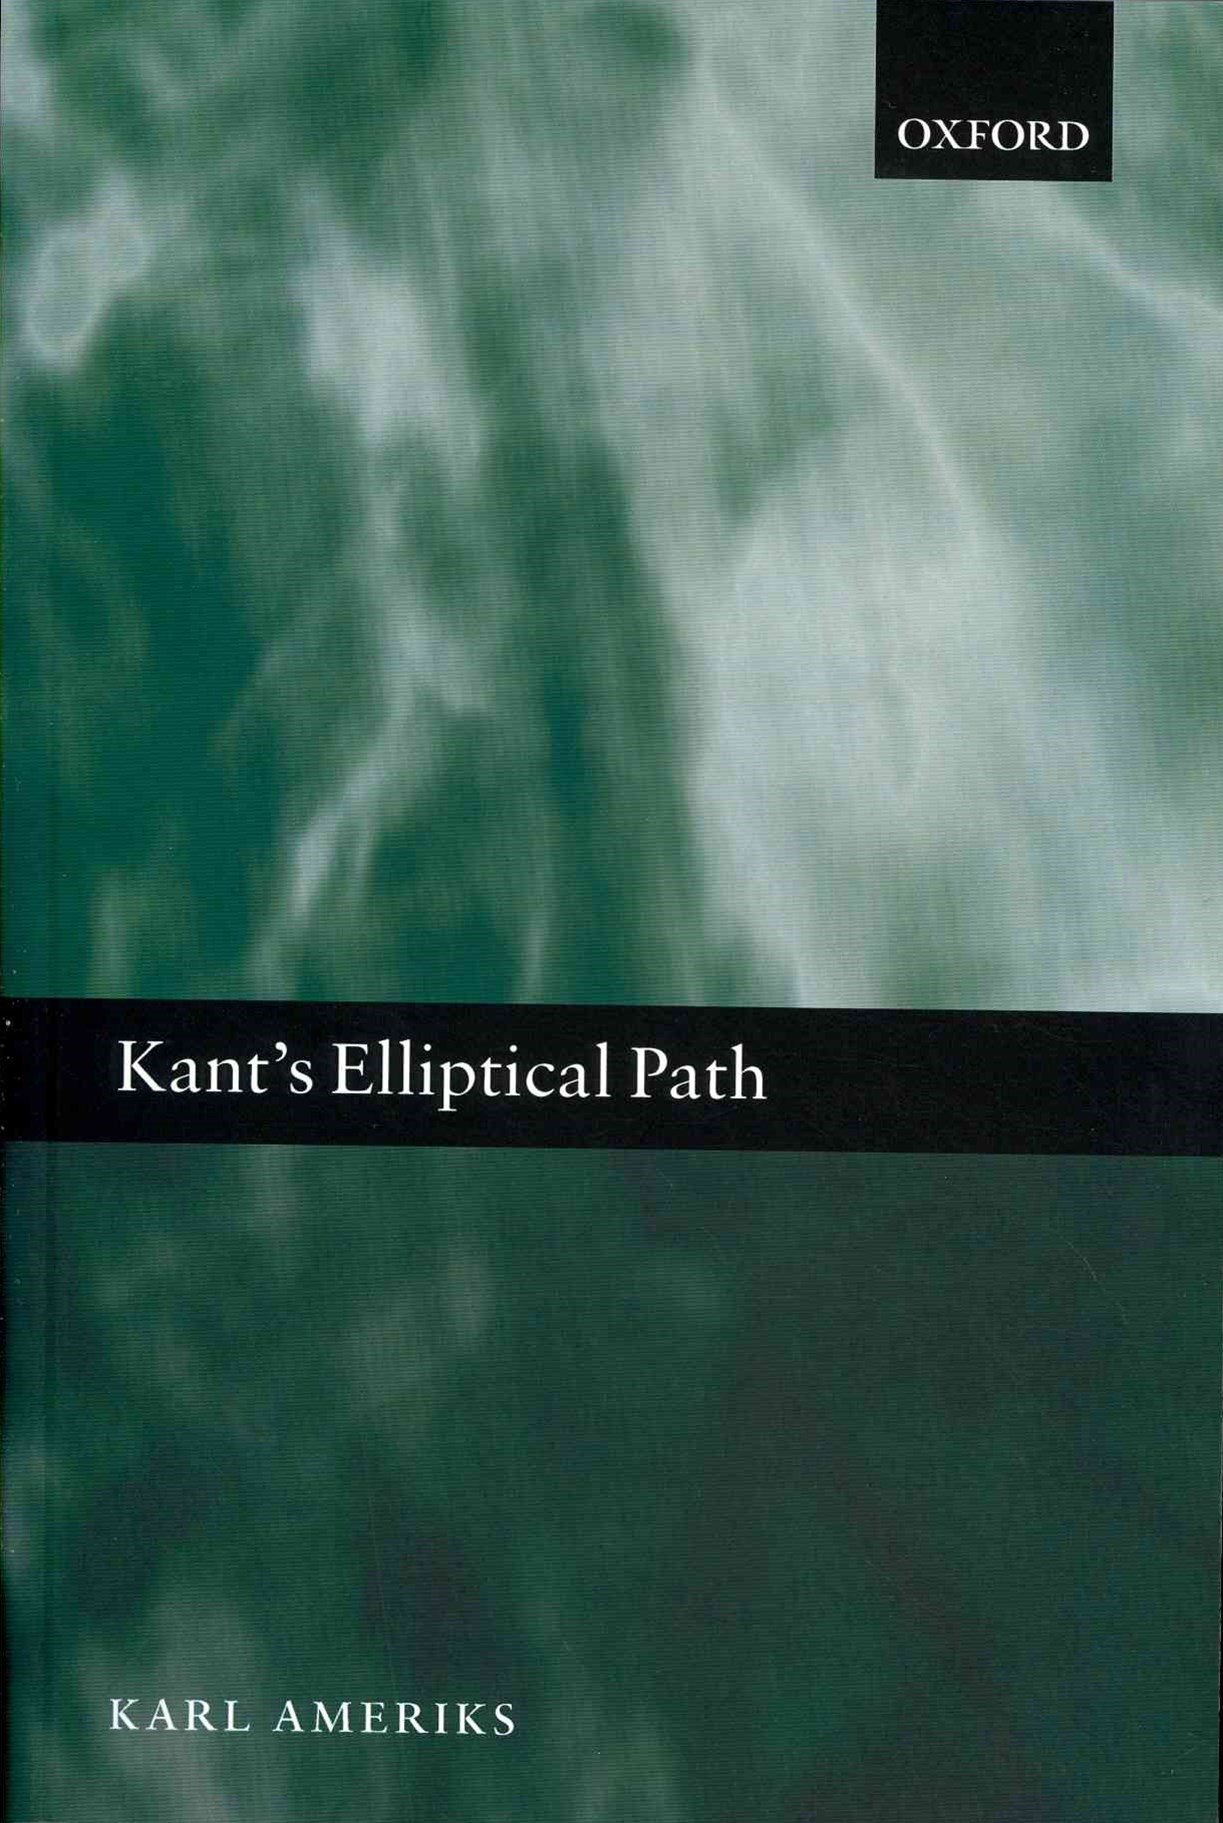 Kant's Elliptical Path